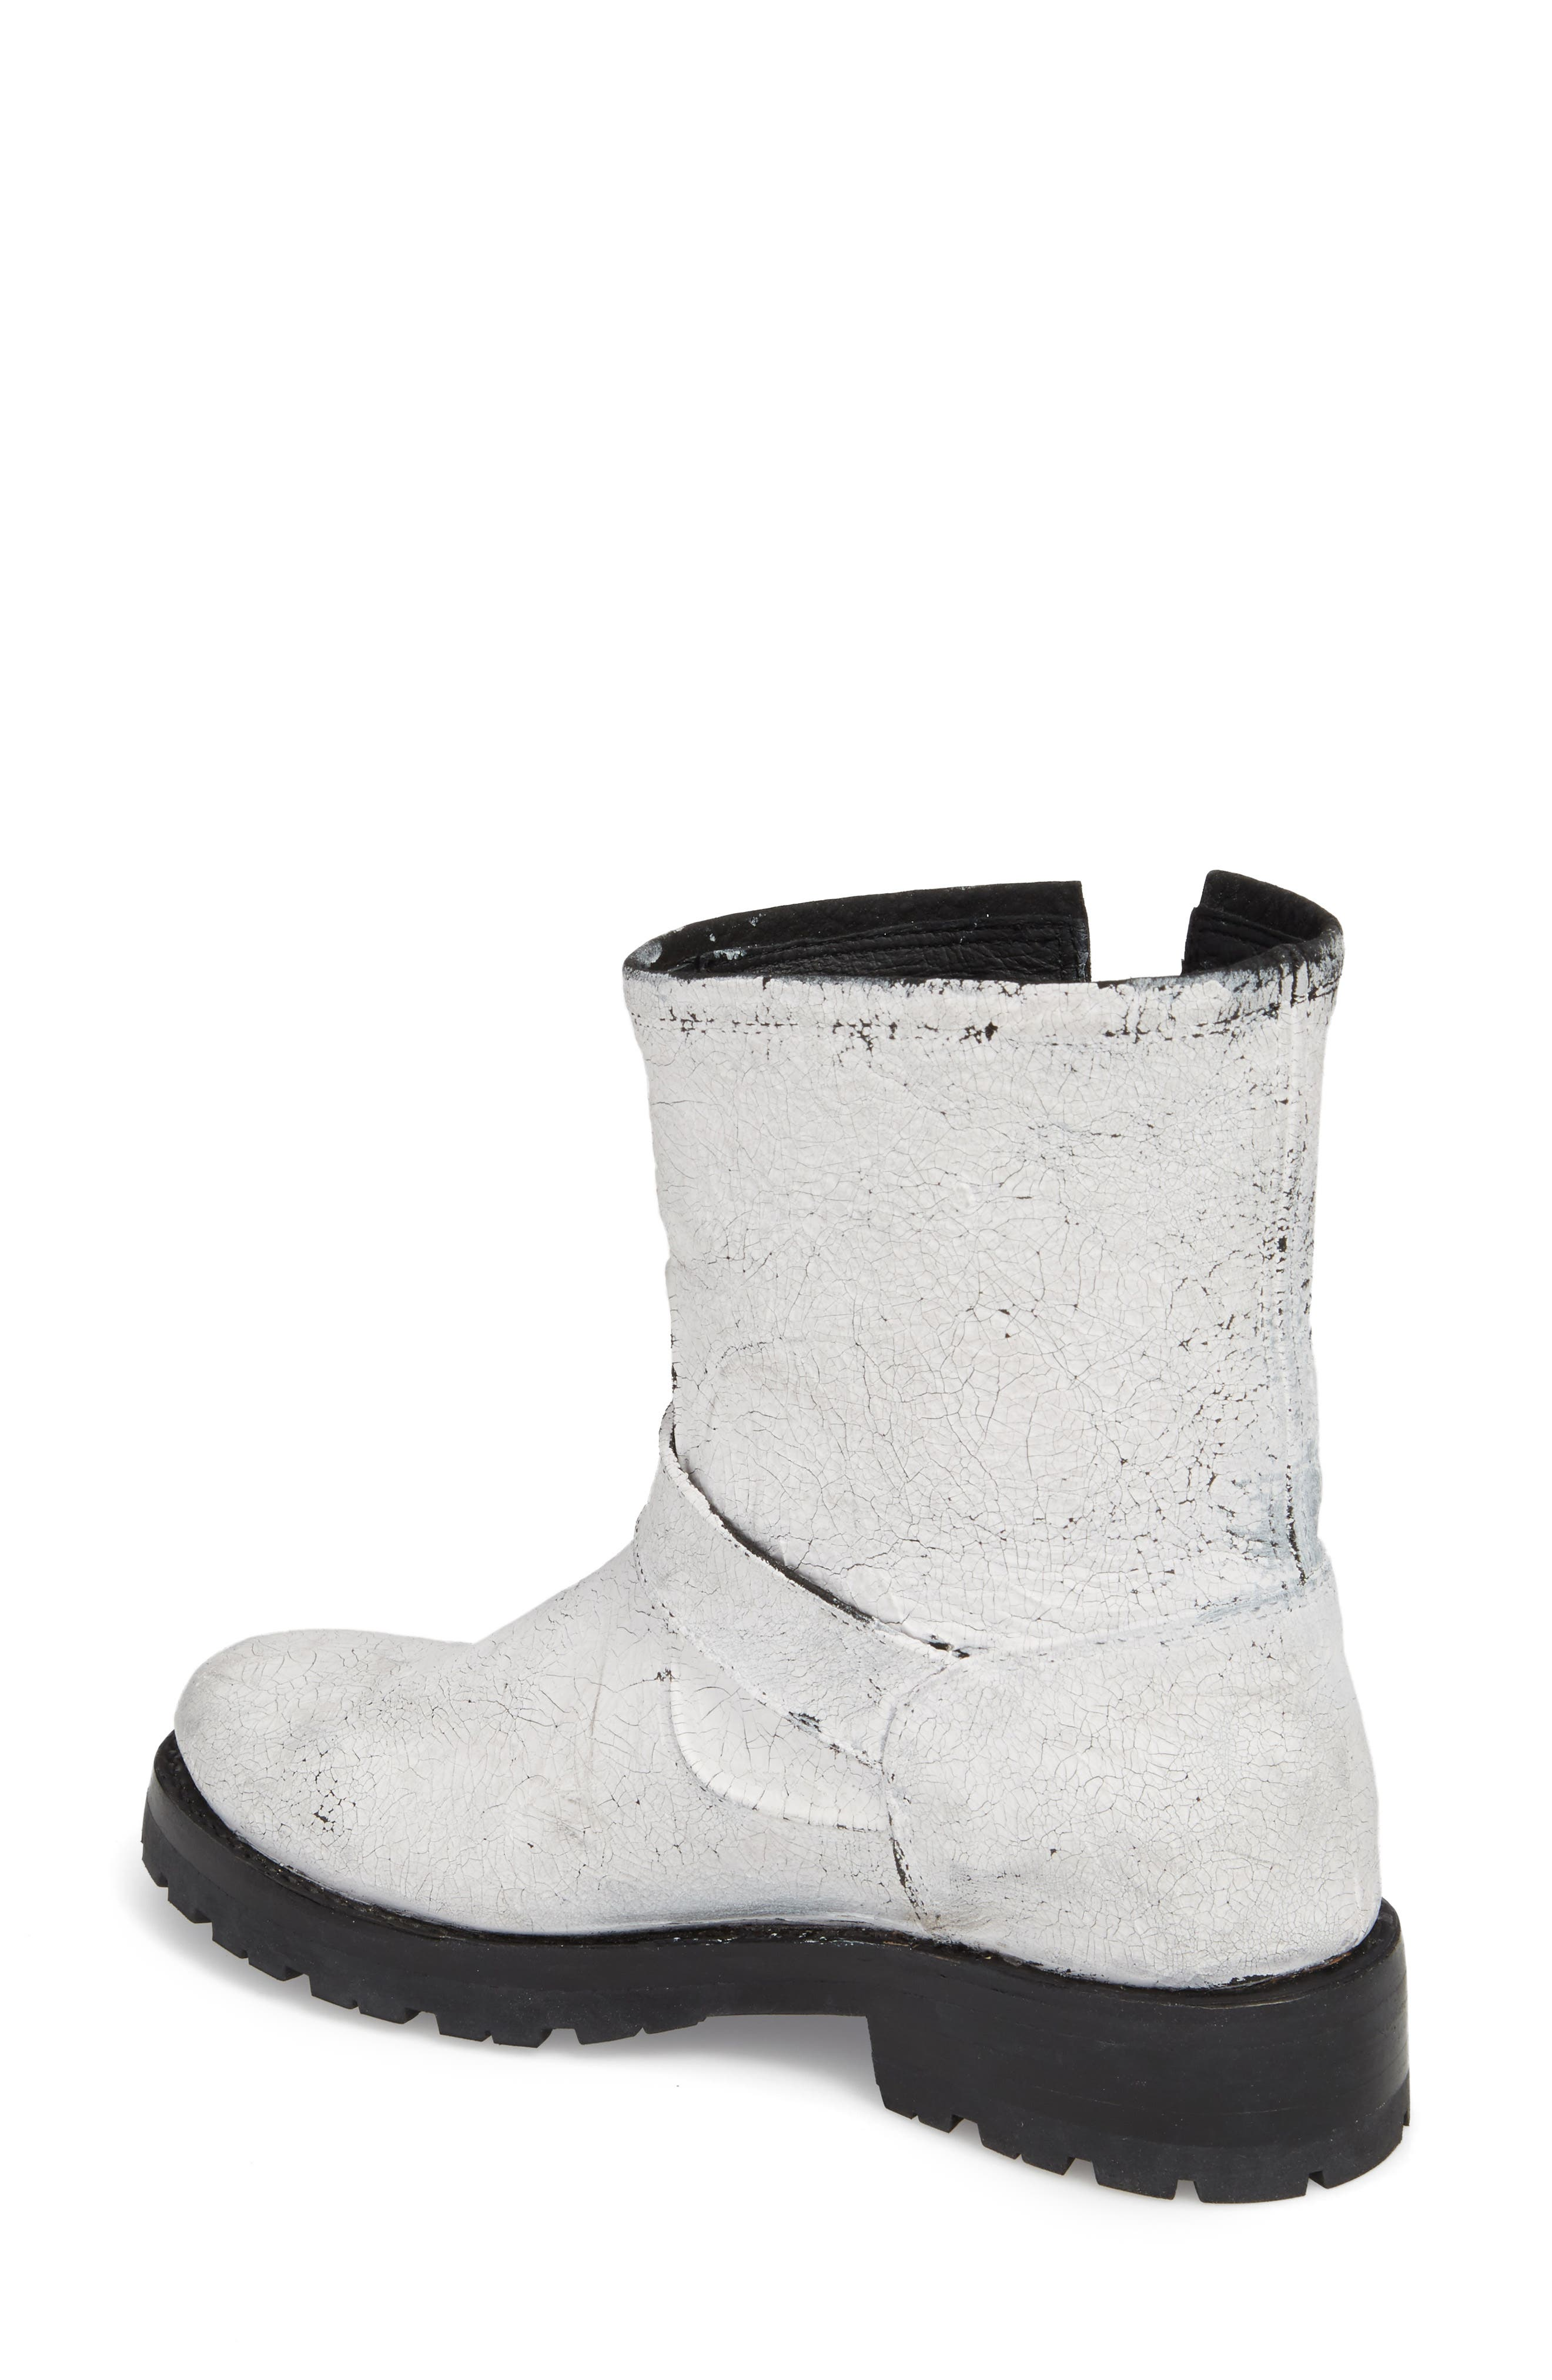 Natalie Engineer Boot,                             Alternate thumbnail 2, color,                             White Leather